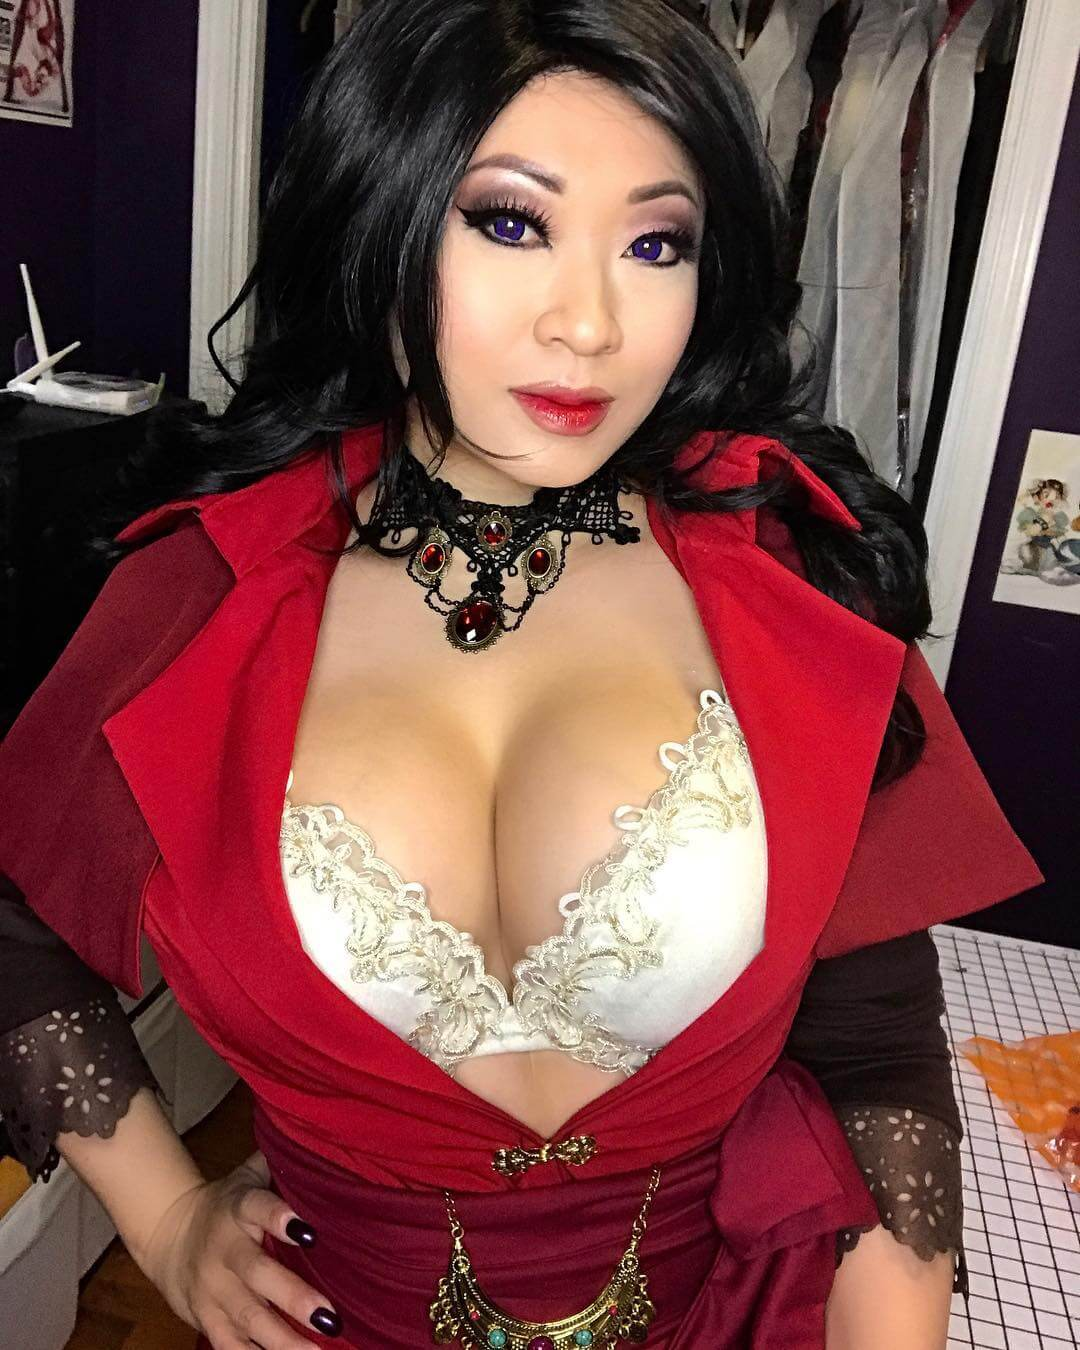 Yaya Han side boobs